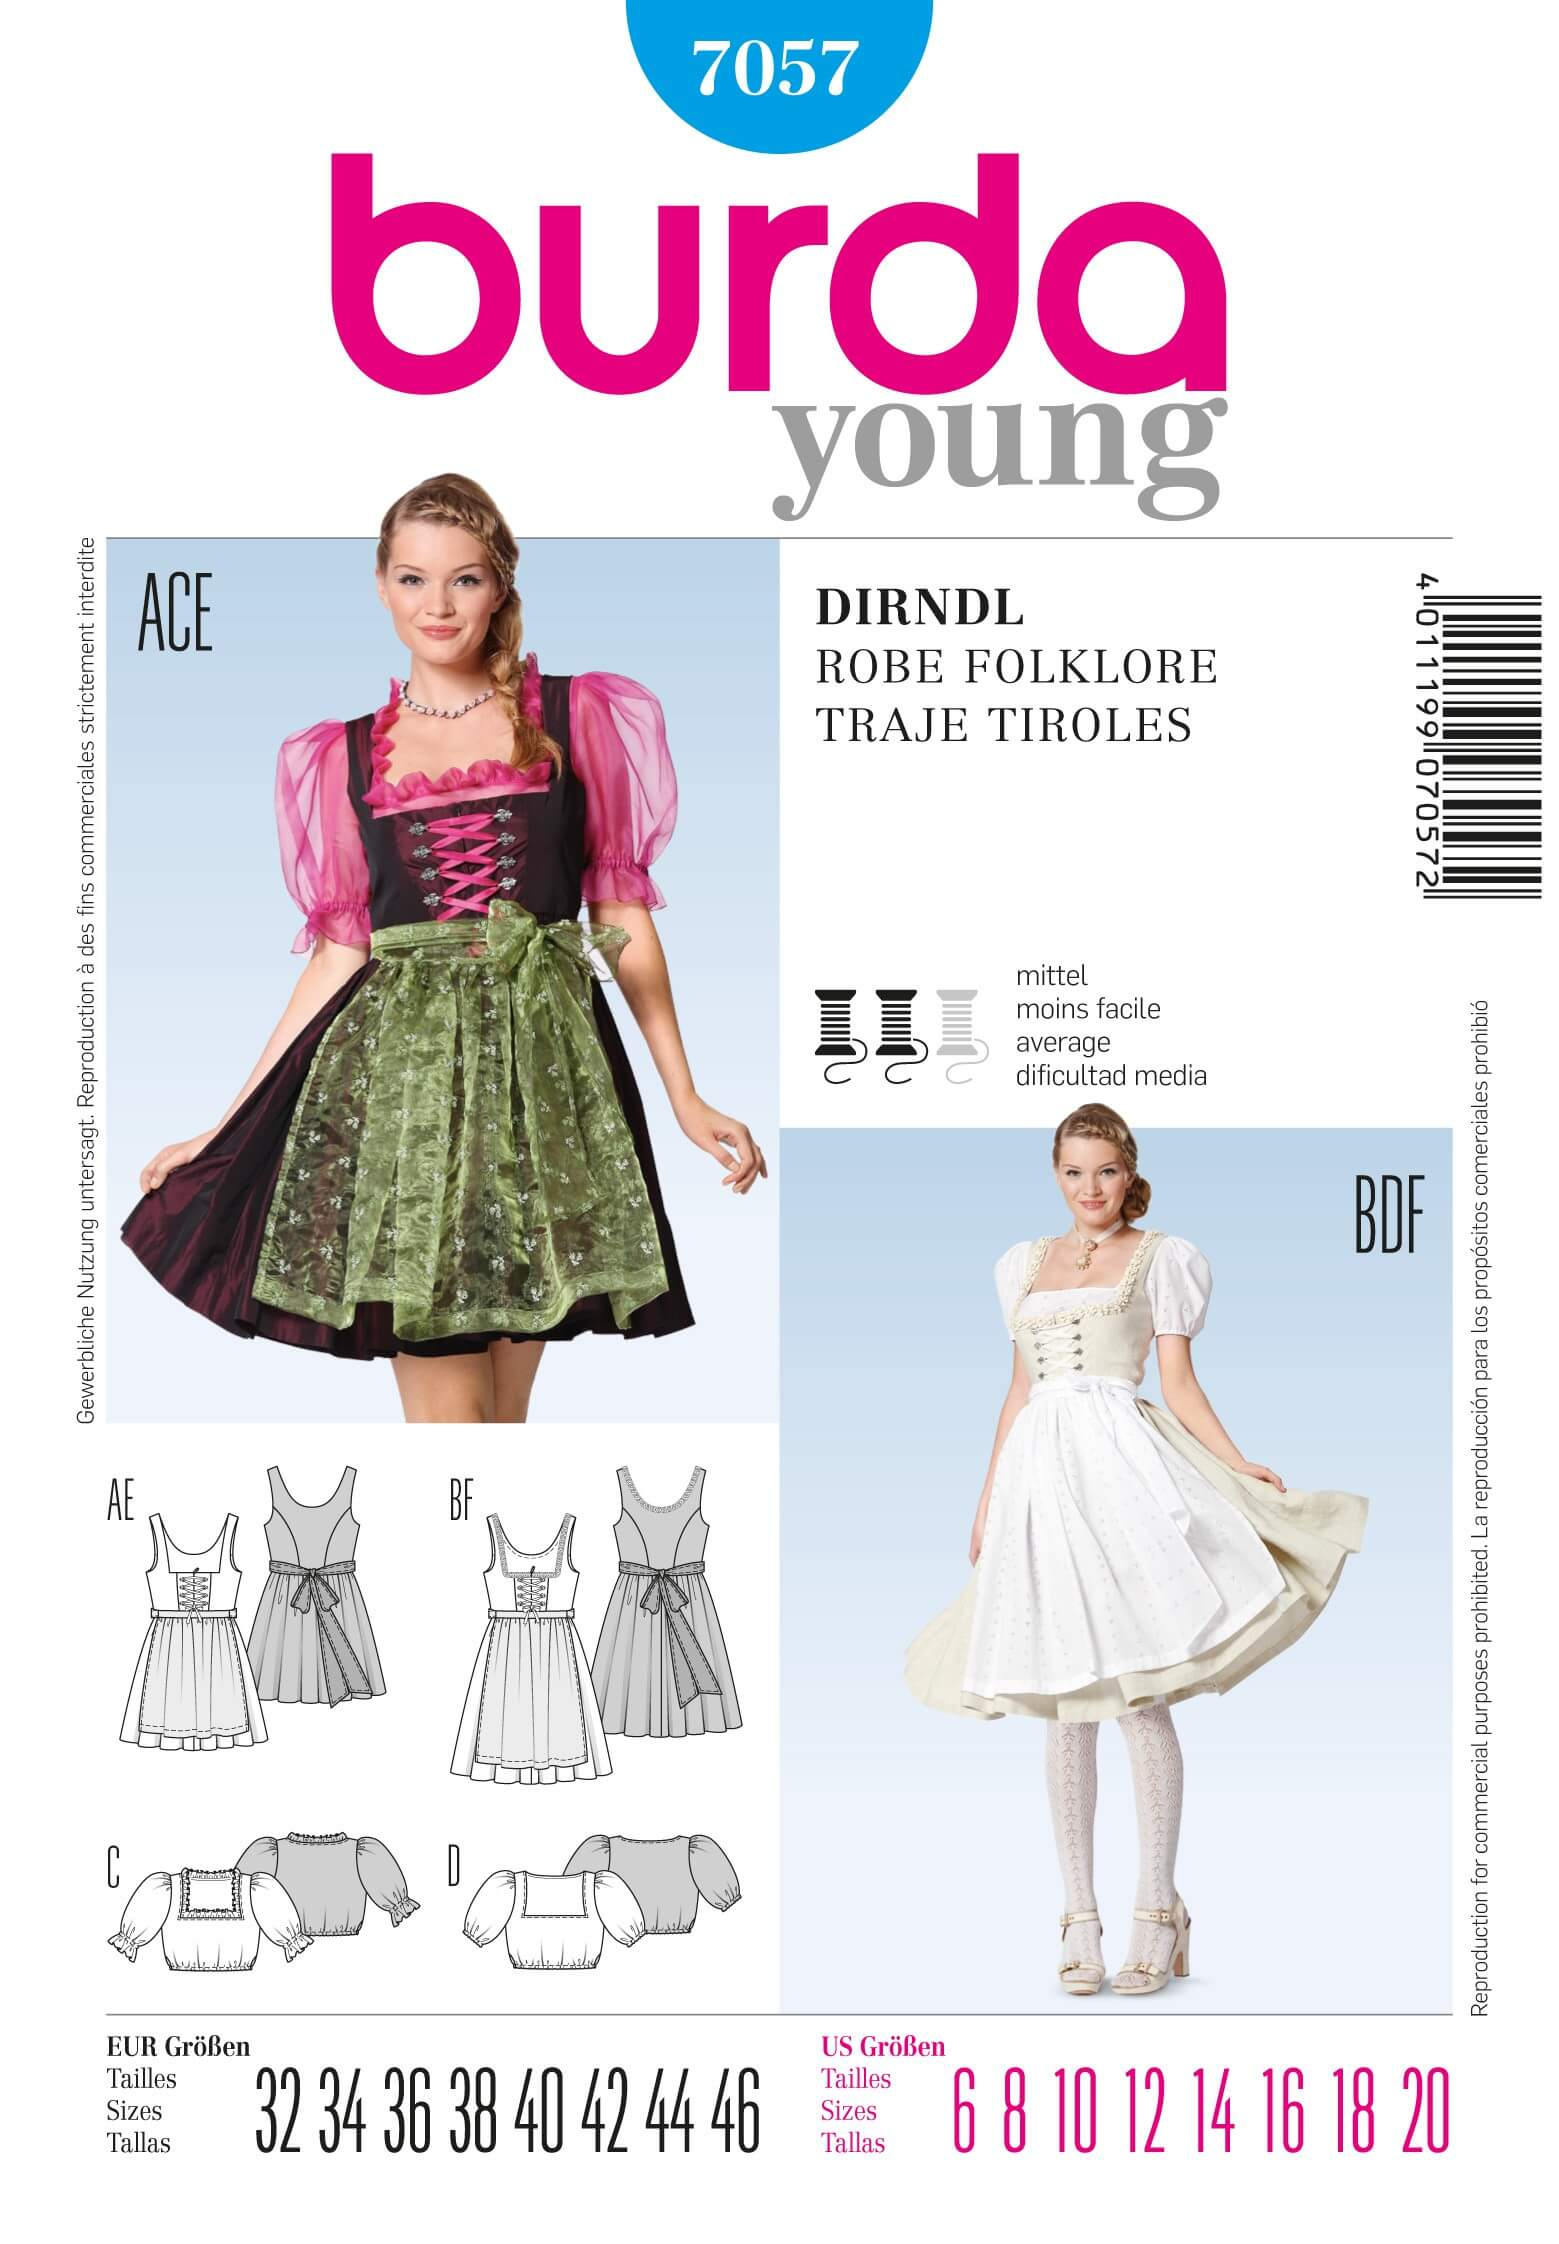 Burda Dirndl Dress & Top Folklore Fabric Sewing Pattern 7057